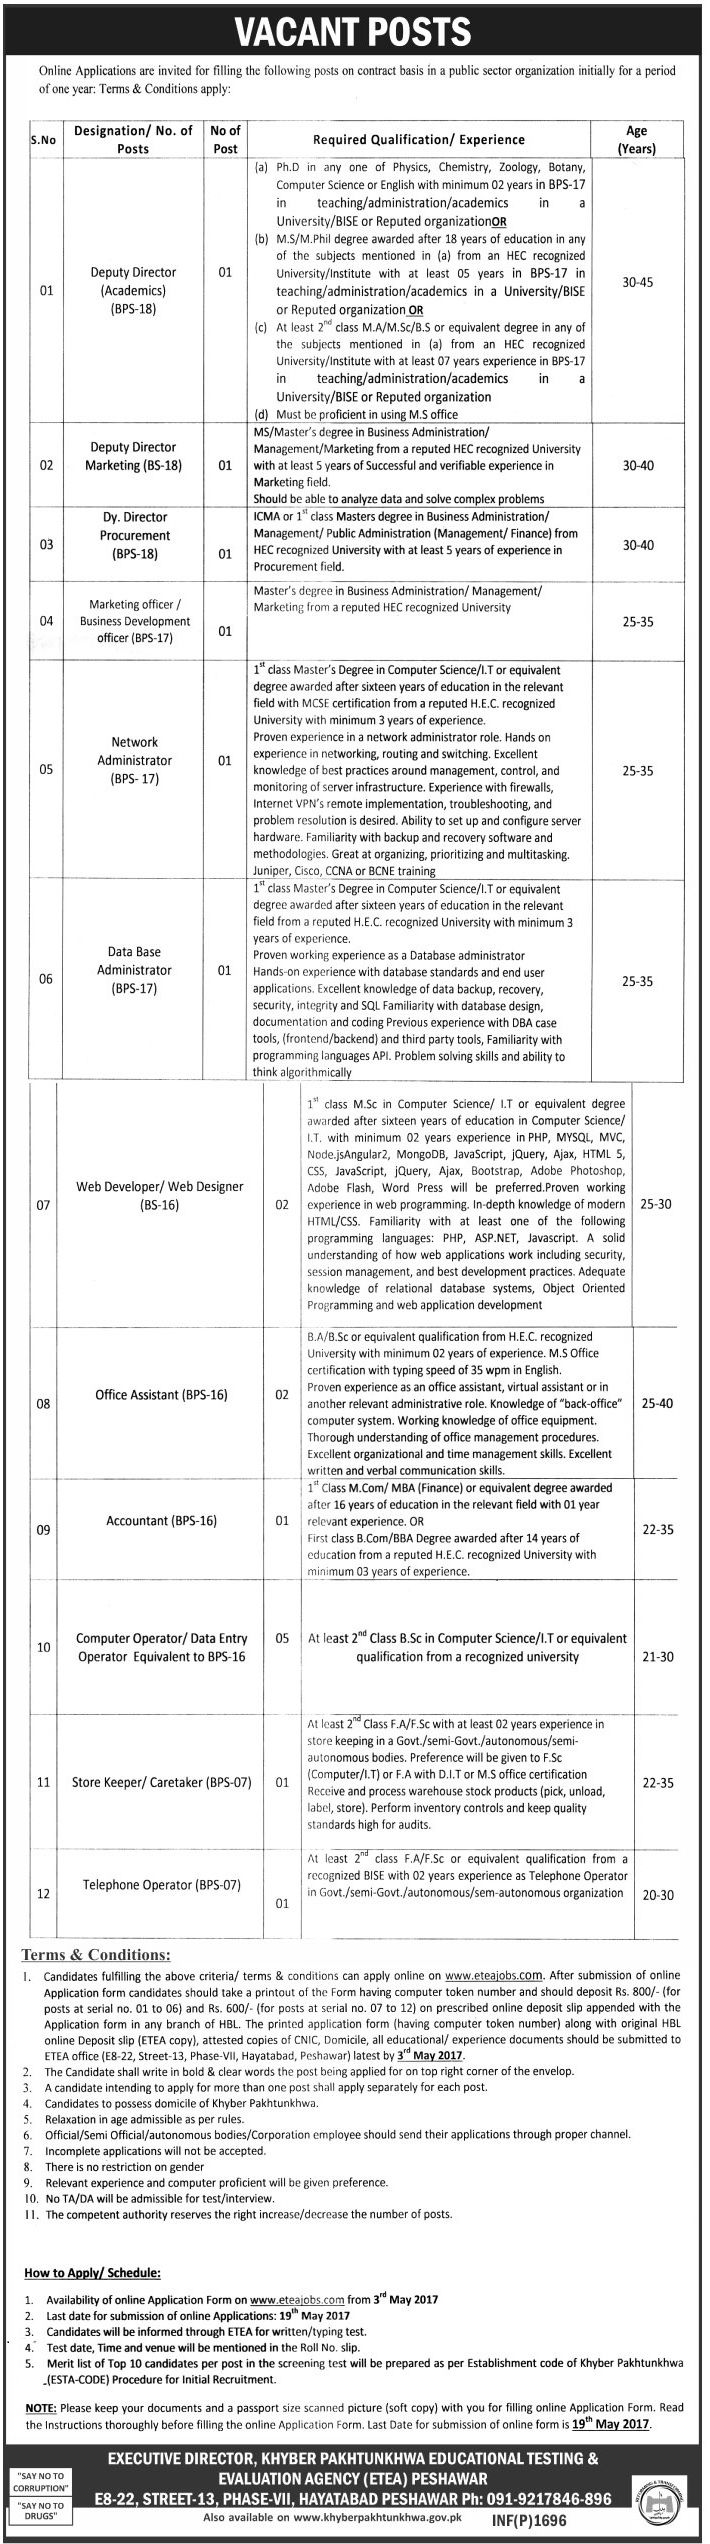 Income and job plan requirements using your centrelink online account - Peshawar Educational Testing Evaluation Agency Jobs